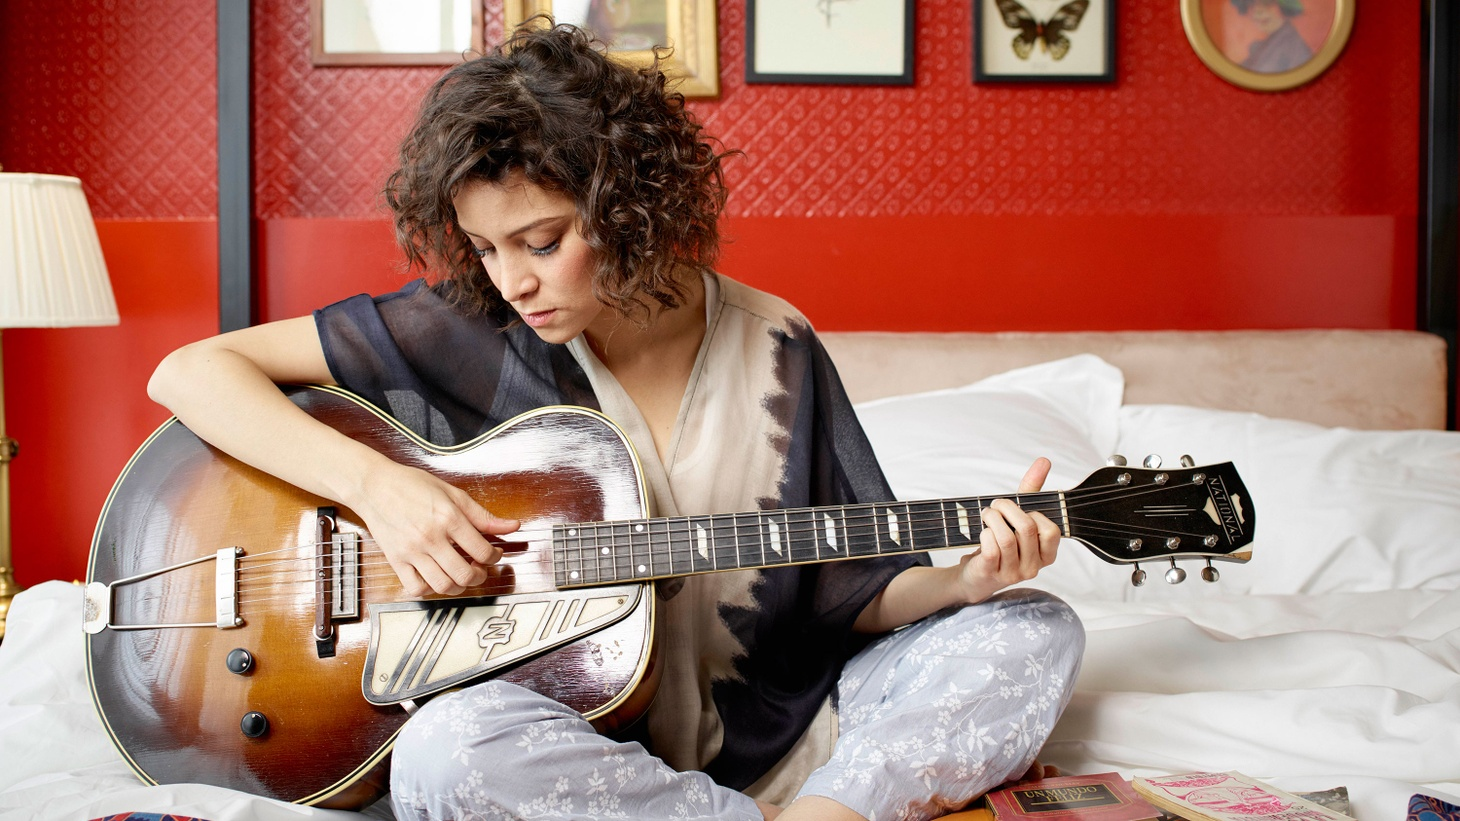 Gaby Moreno has a Latin Grammy in her arsenal. She also has Gabriel Roth, who is famous for producing artists like Sharon Jones and Amy Winehouse, taking the reigns as producer of her new album.